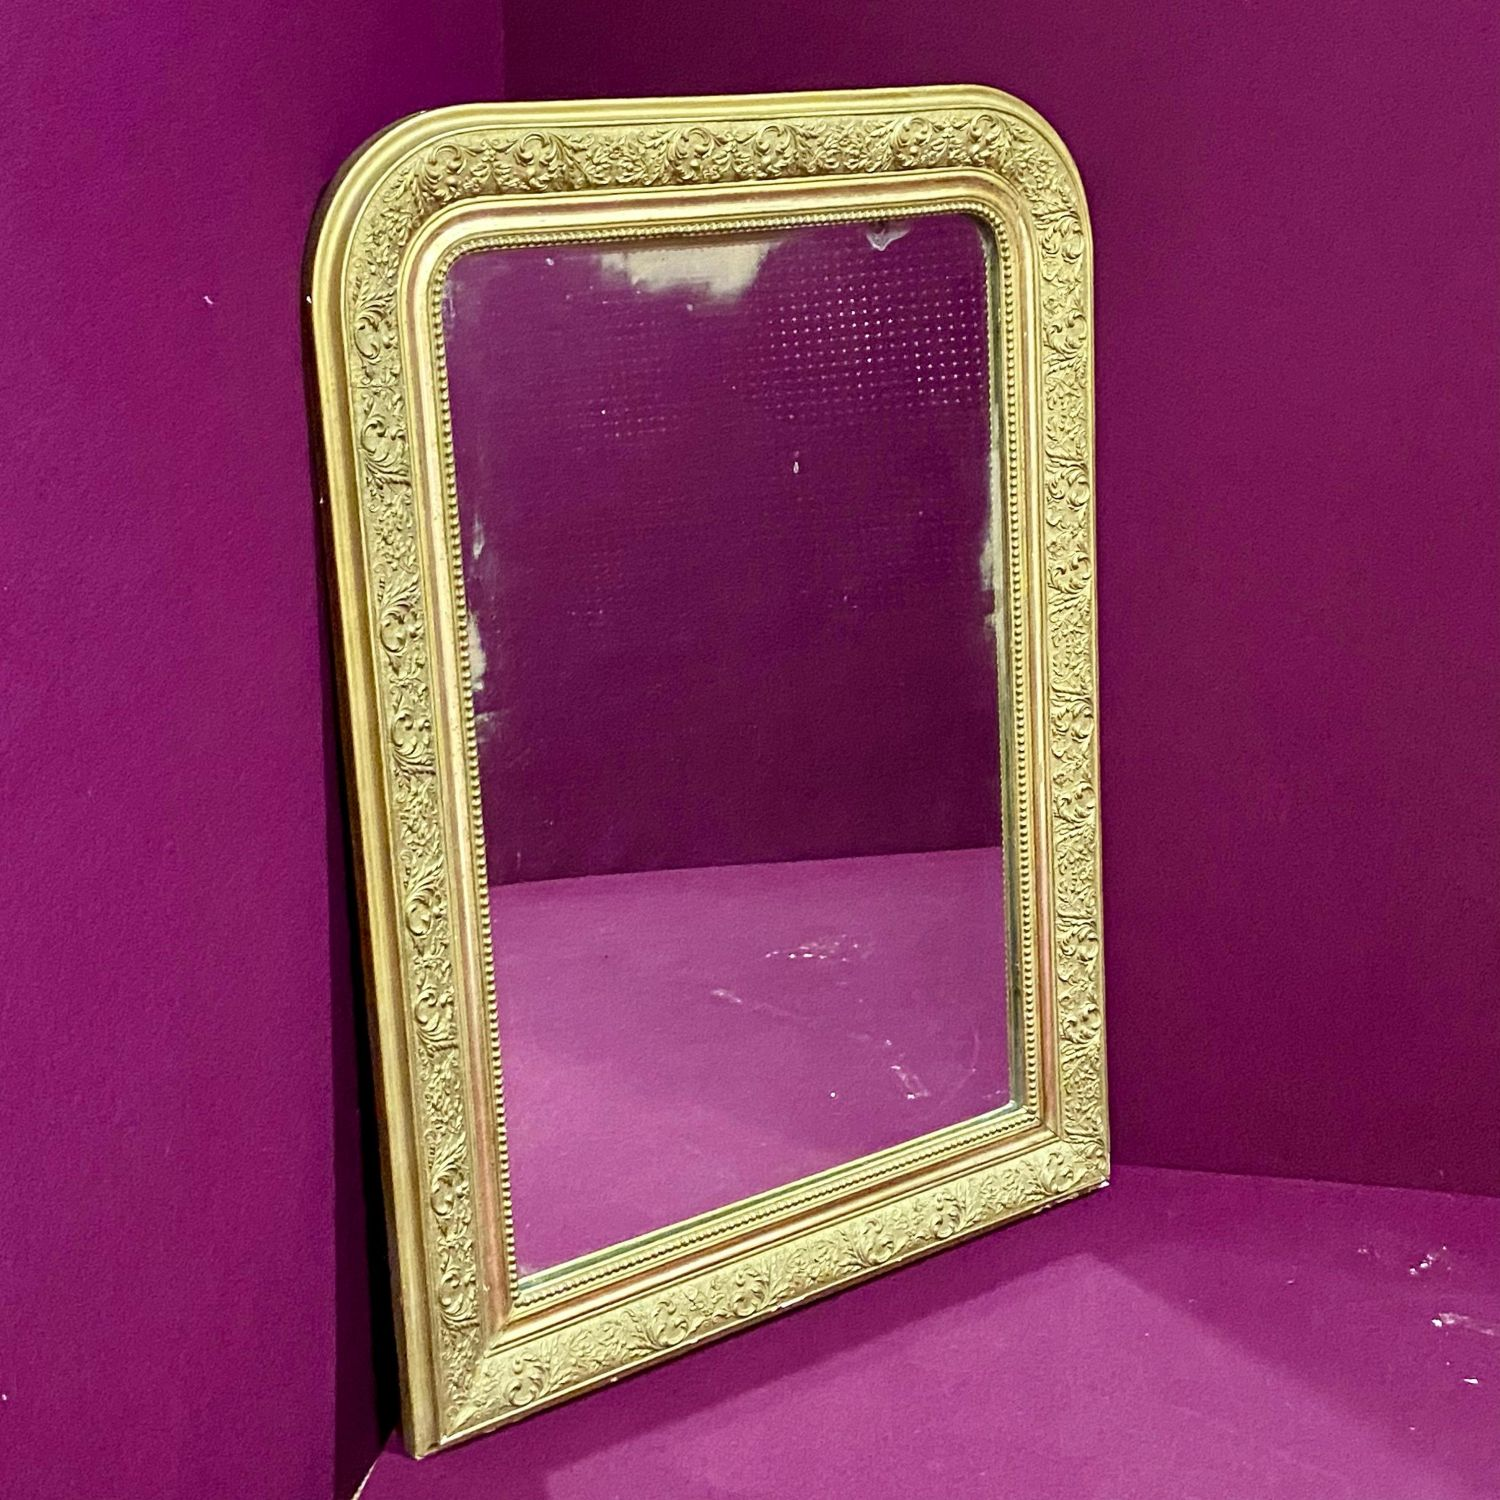 19th Century French Gilt Gesso Over Mantel Mirror Antique Mirrors Hemswell Antique Centres